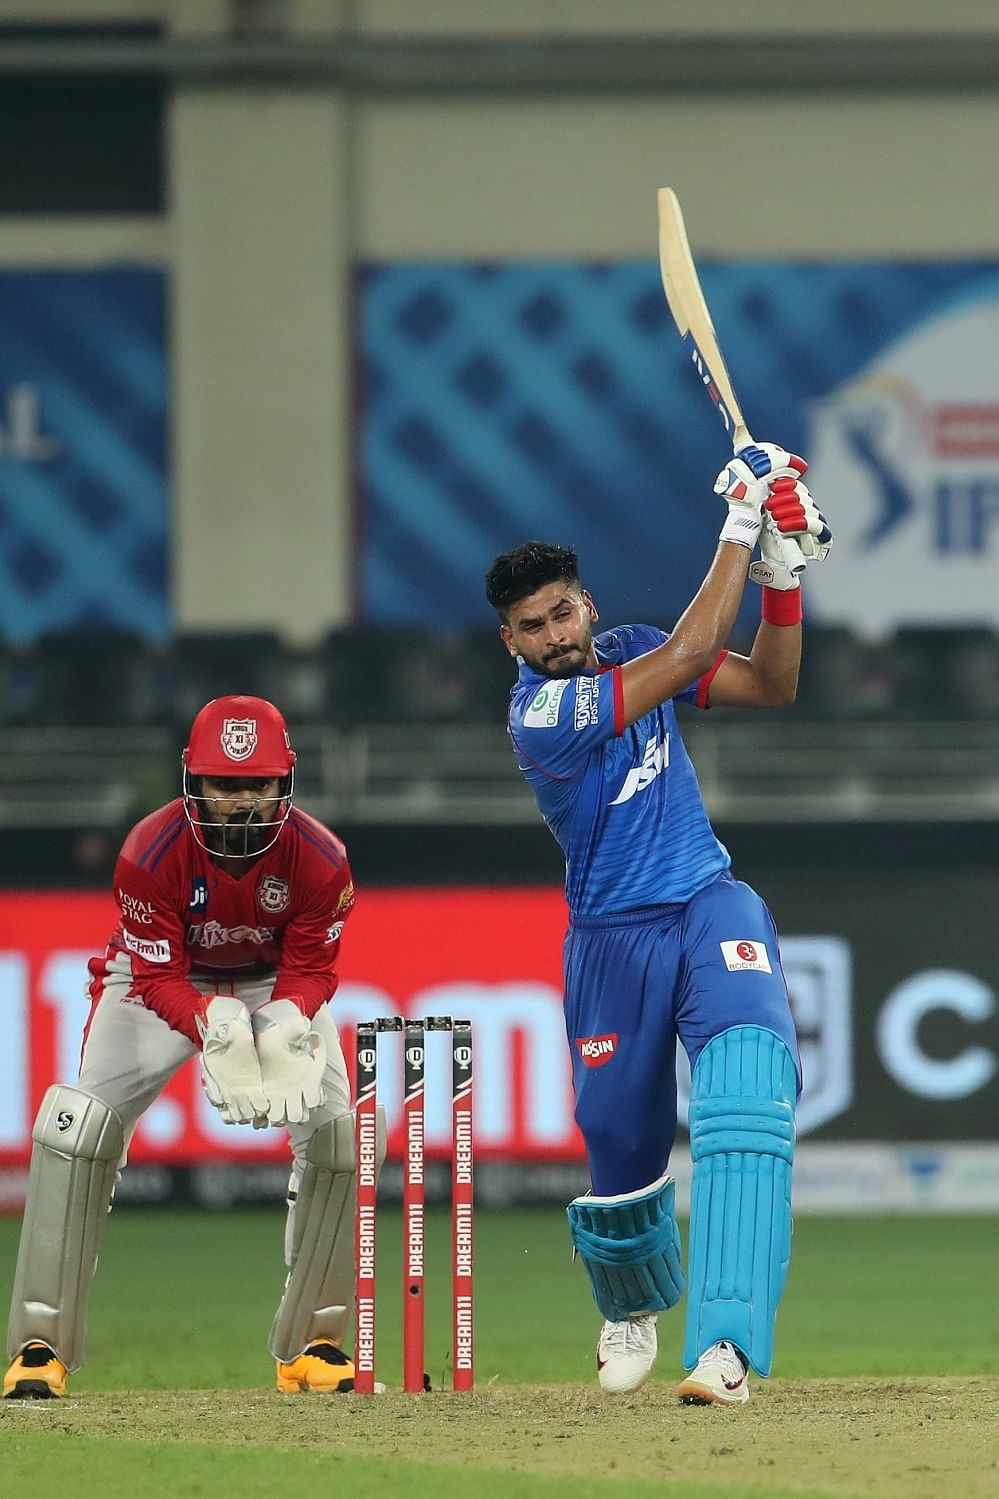 Delhi Capitals skipper Shreyas Iyer striking a six against Kings XI Punjab in the second match of the Indian Premier League in Dubai, on September 20, 2020.